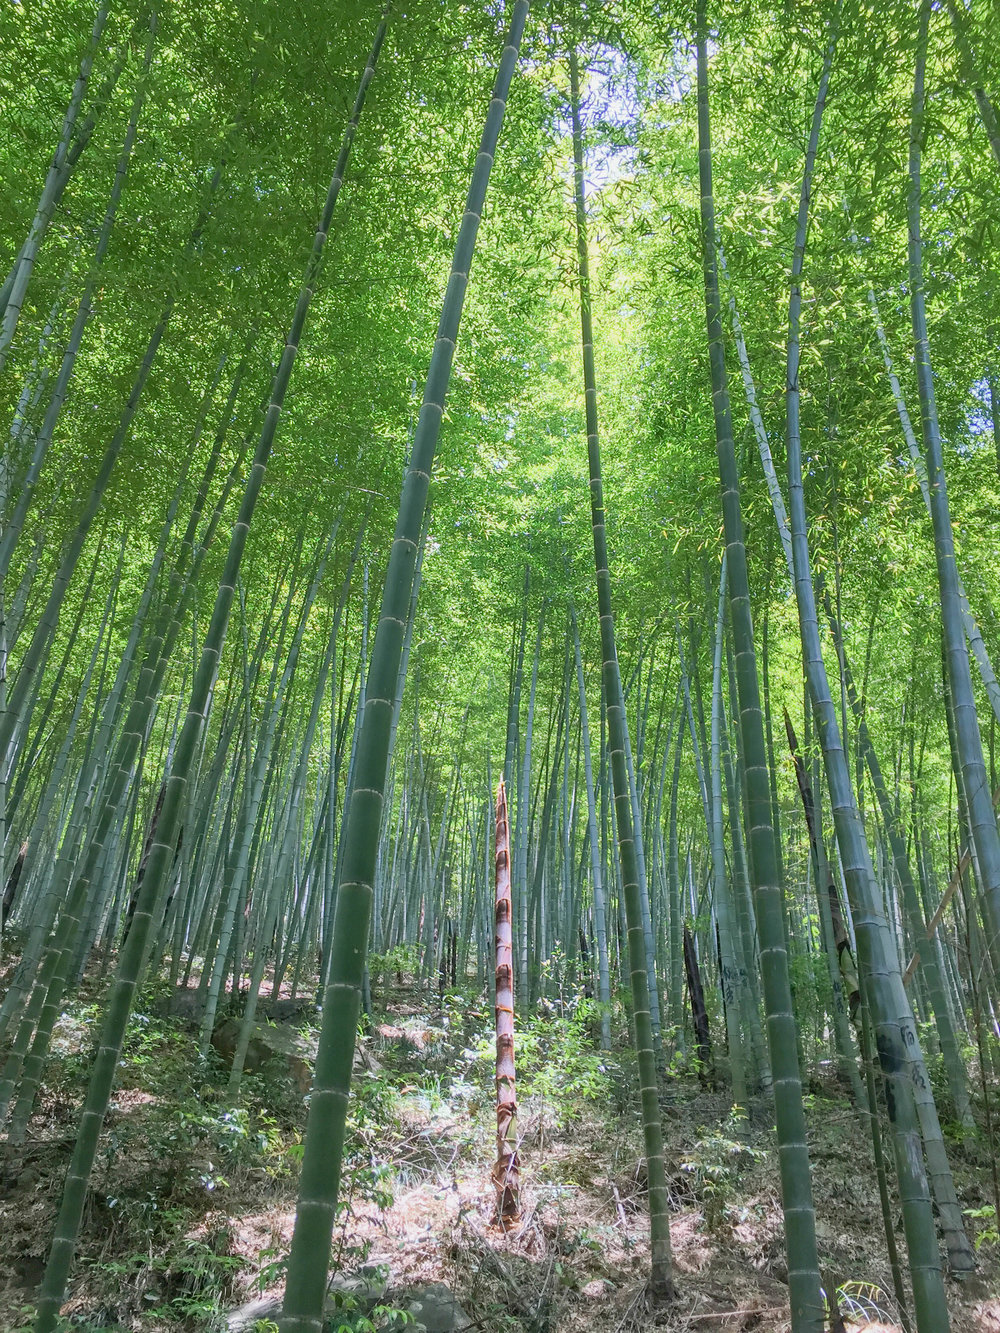 Bamboo forest near Long Shang Cun, Linan